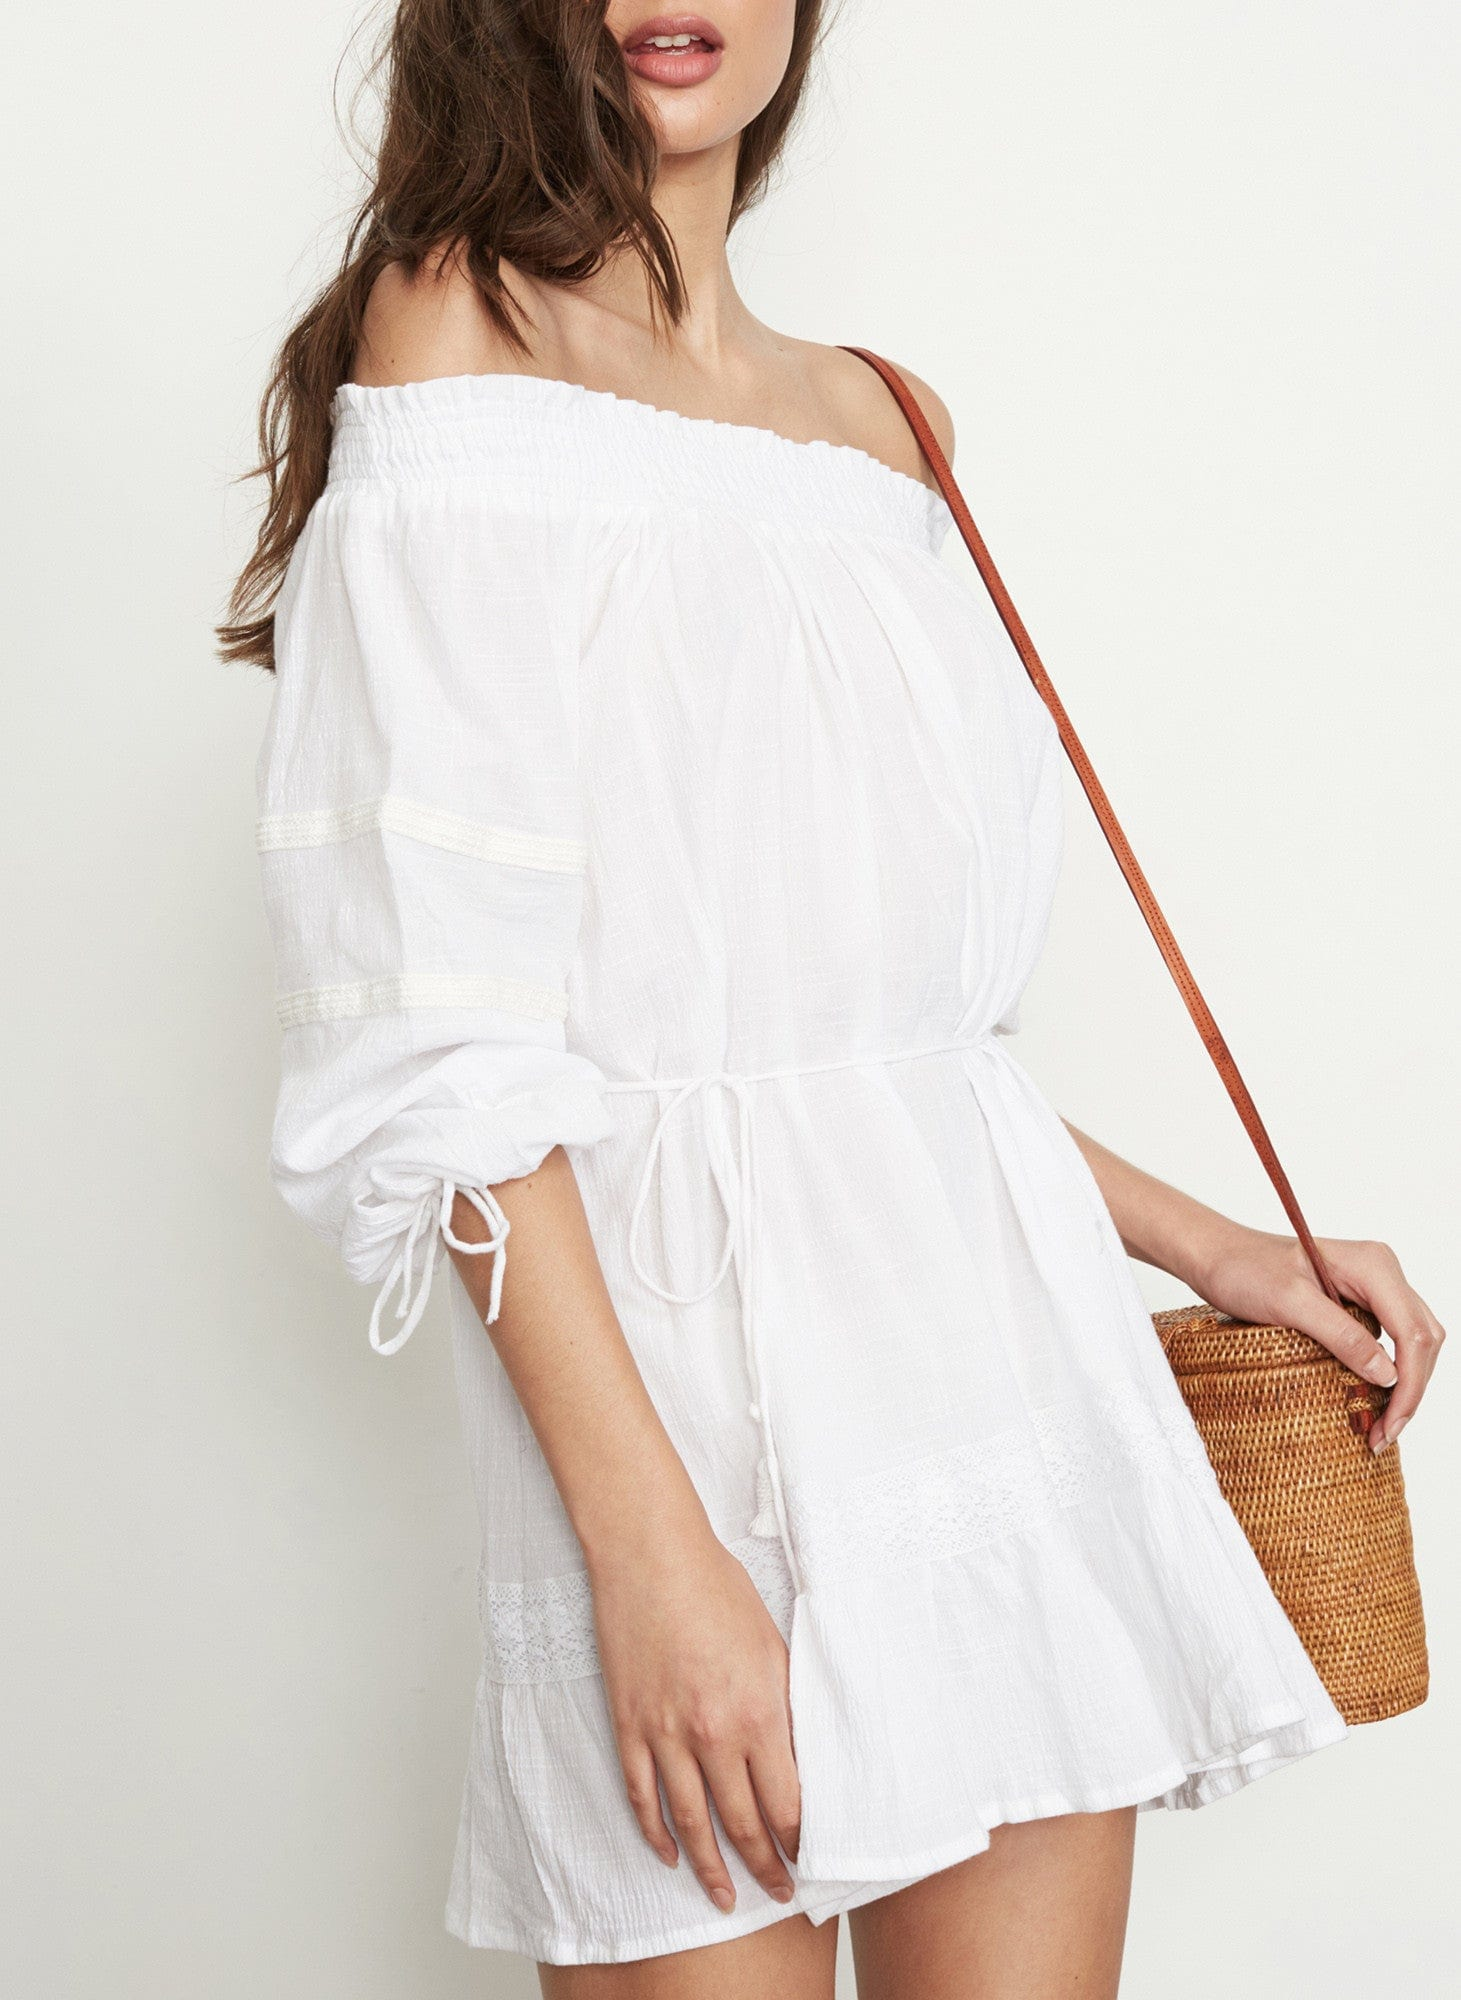 PLAIN WHITE - MILOS DRESS